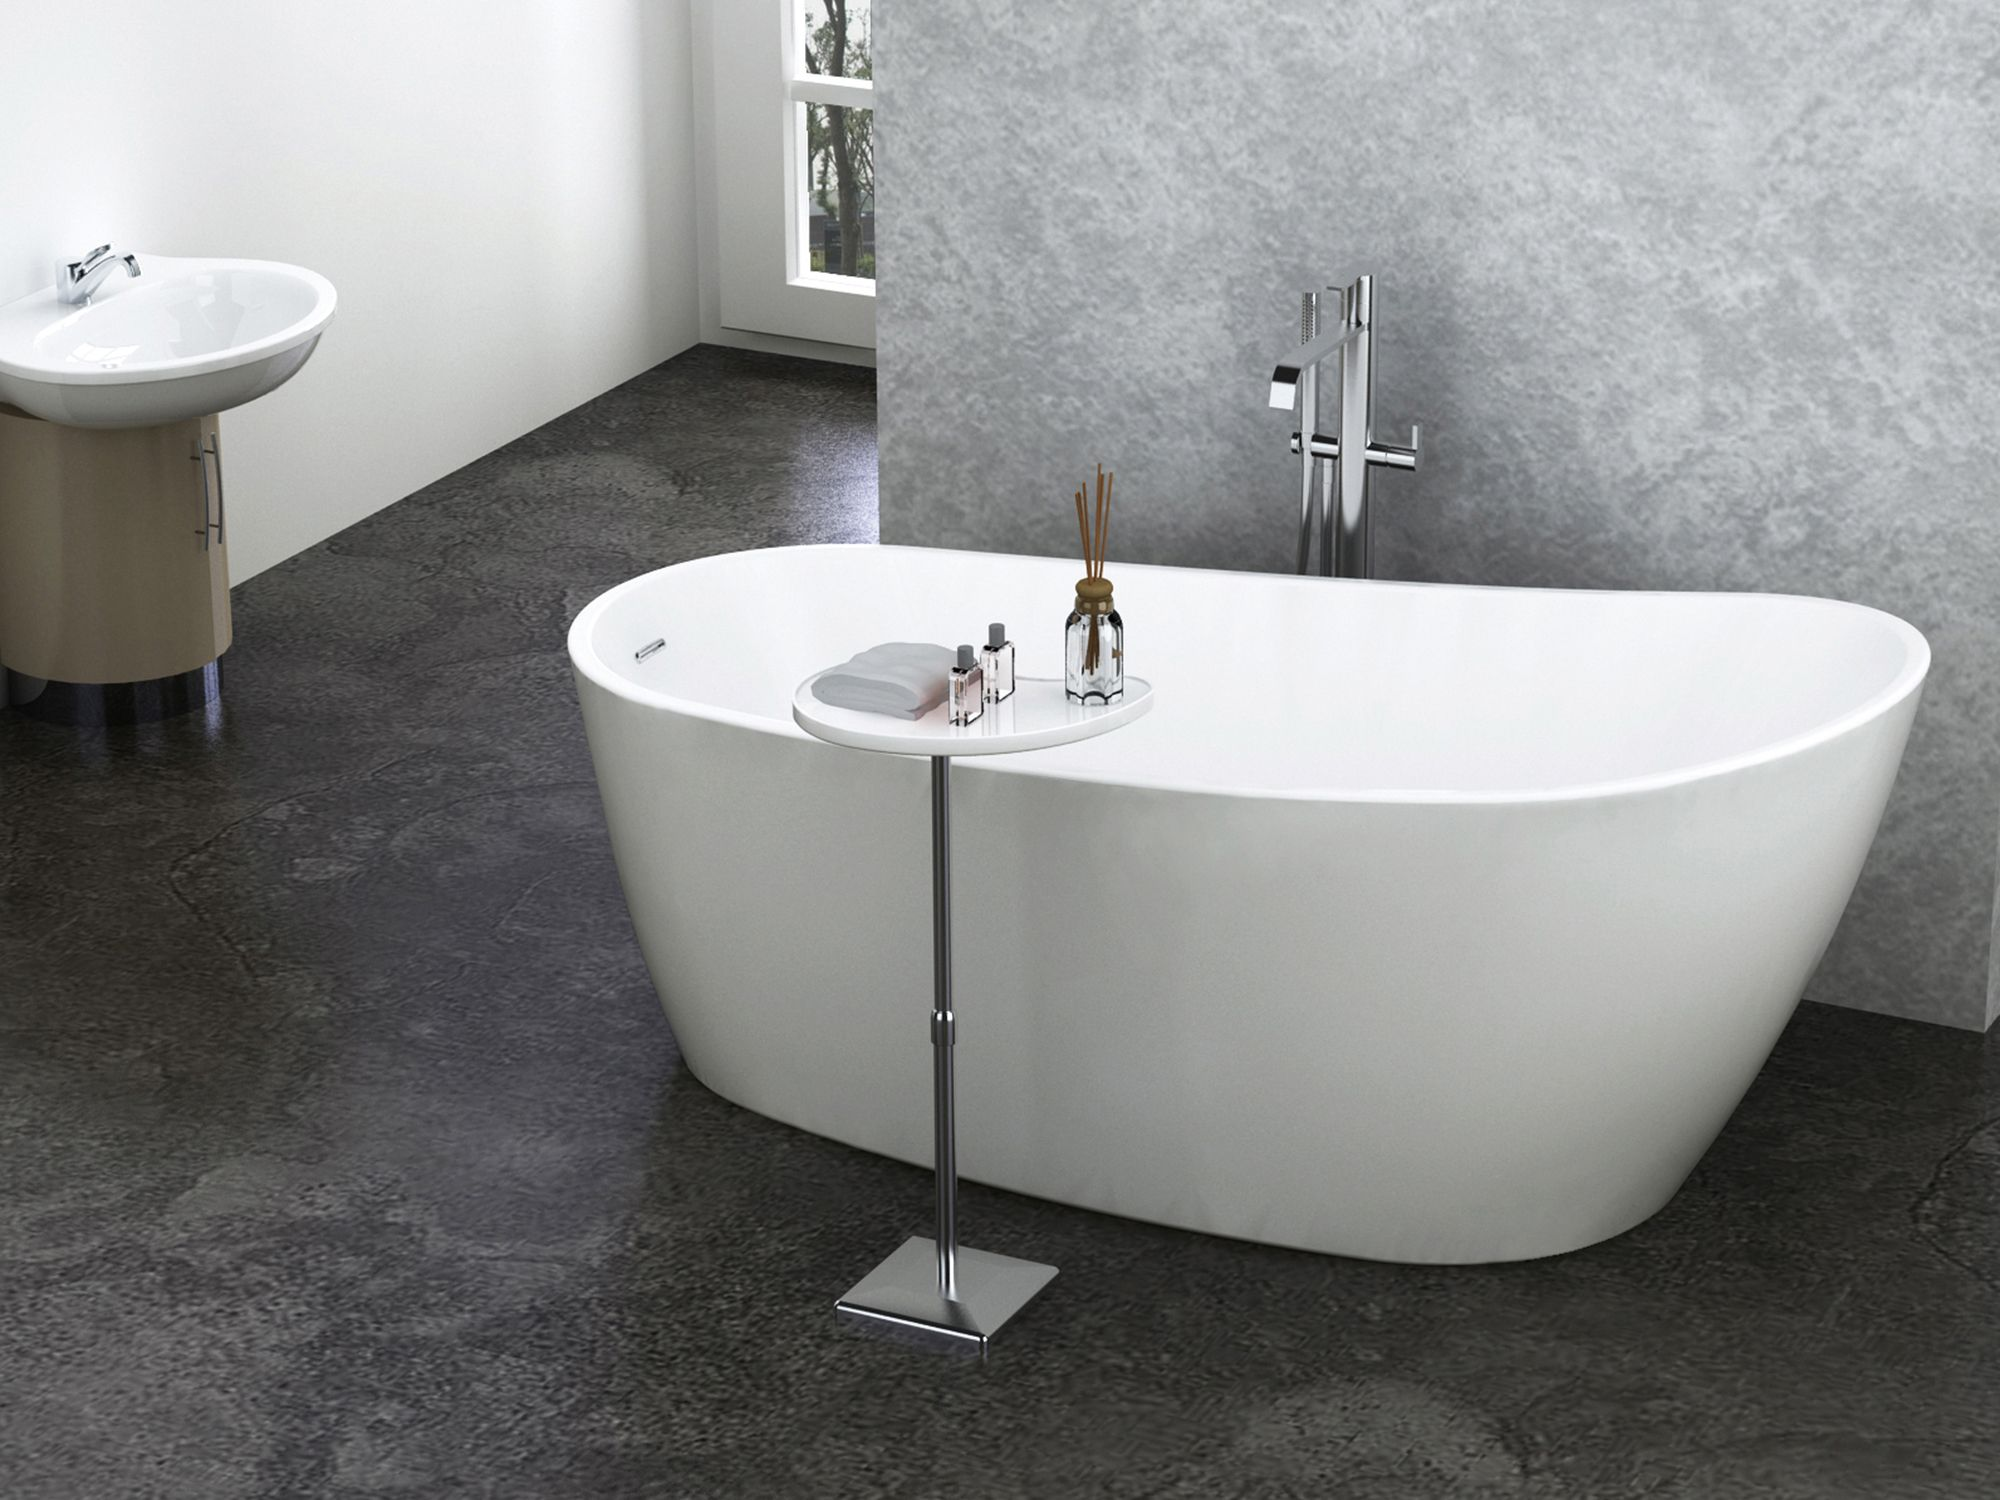 Pin by Anden Kitchen & Bath Centre on Free Standing Bath Tubs ...